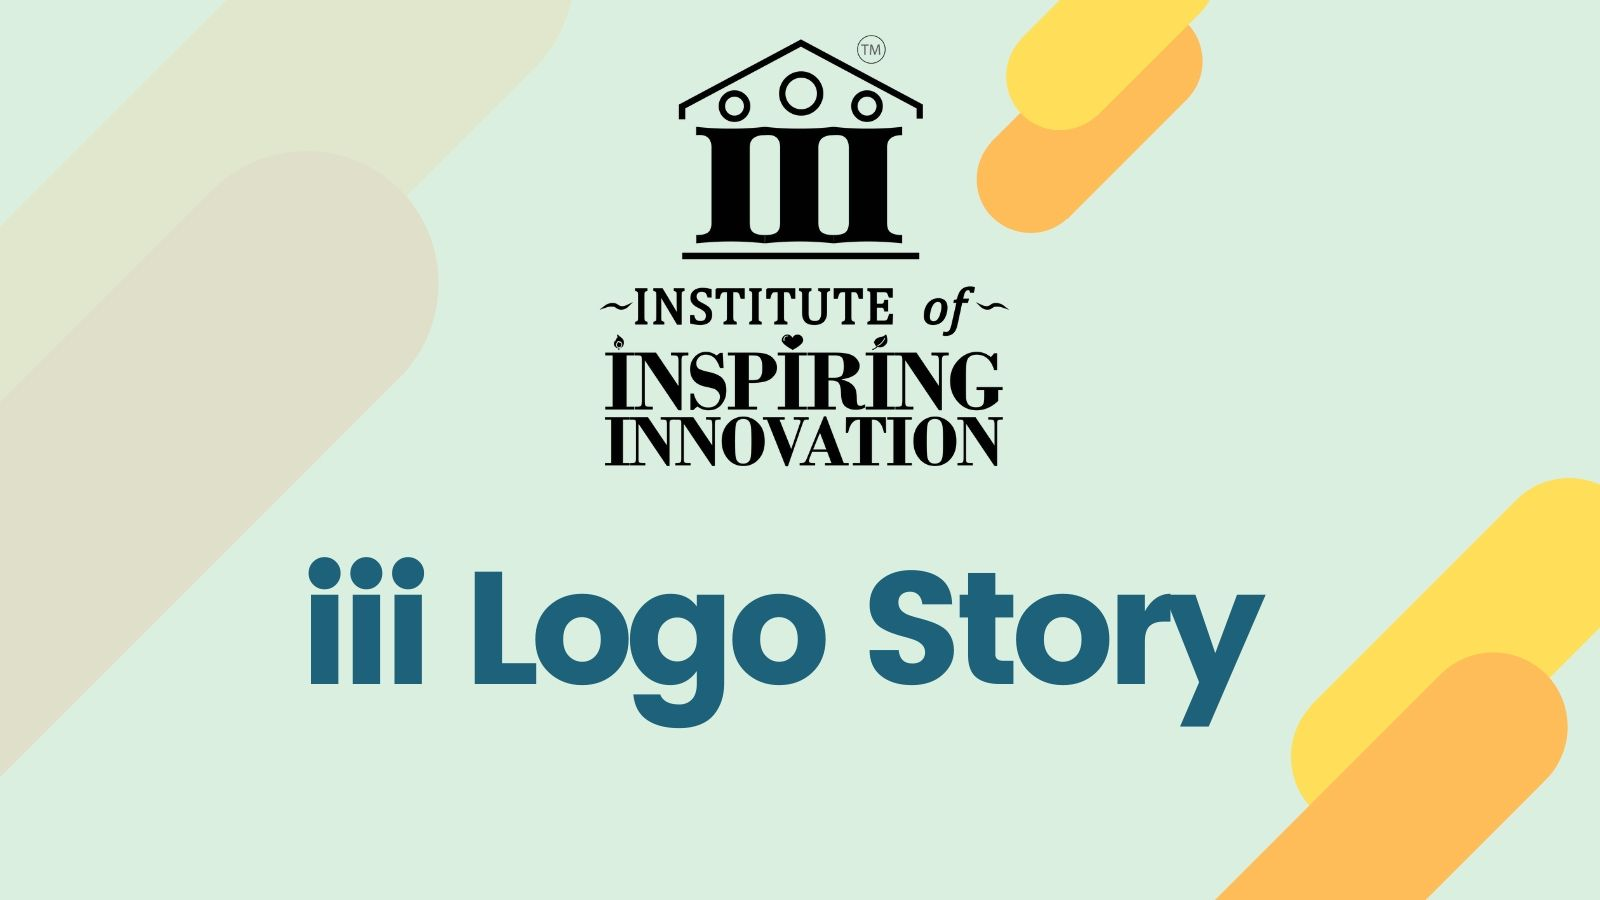 Institute of Inspiring Innovation logo